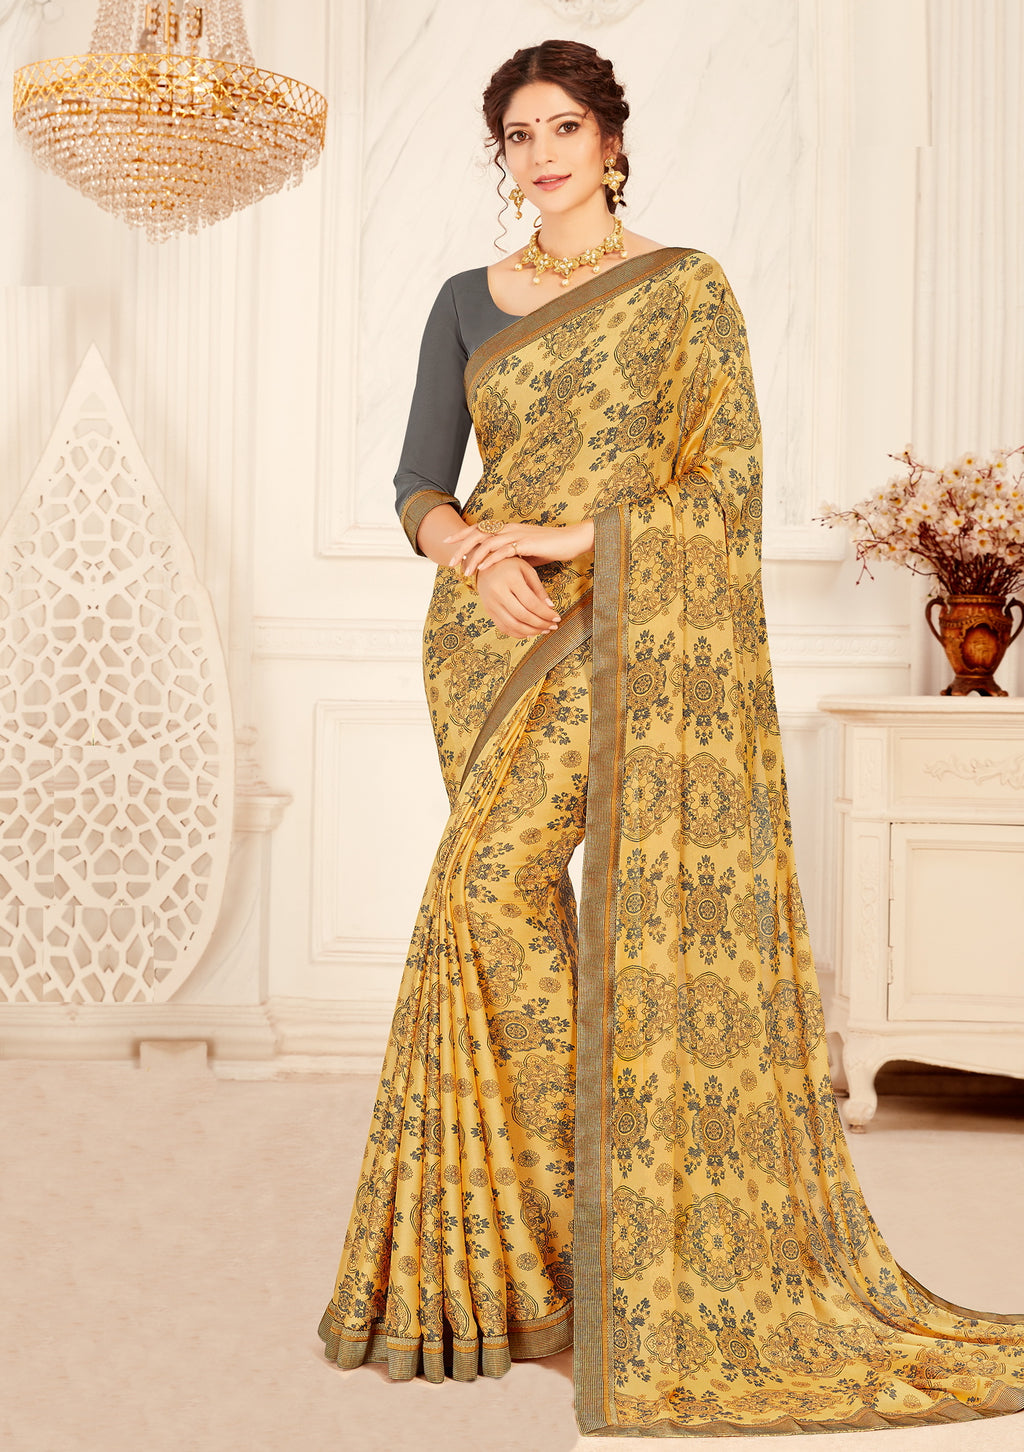 Light Yellow Color Crepe Georgette Trendy Casual Party Sarees NYF-6333